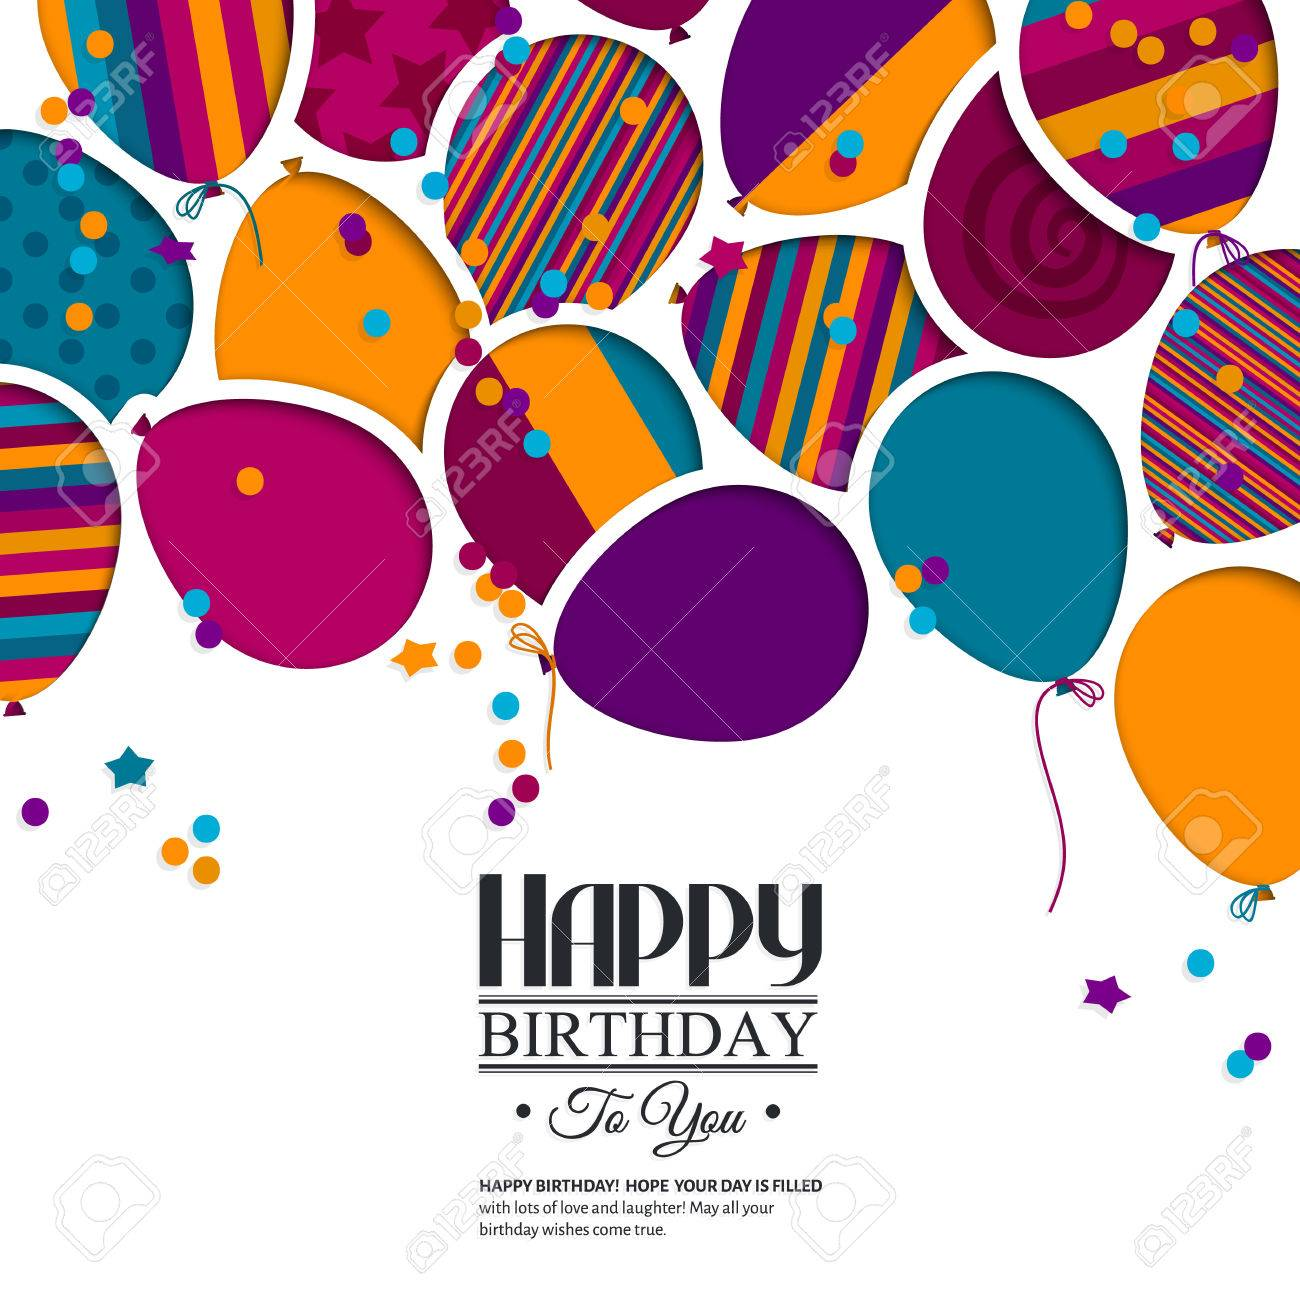 Colorful birthday card with paper balloons and wishes. - 33155600